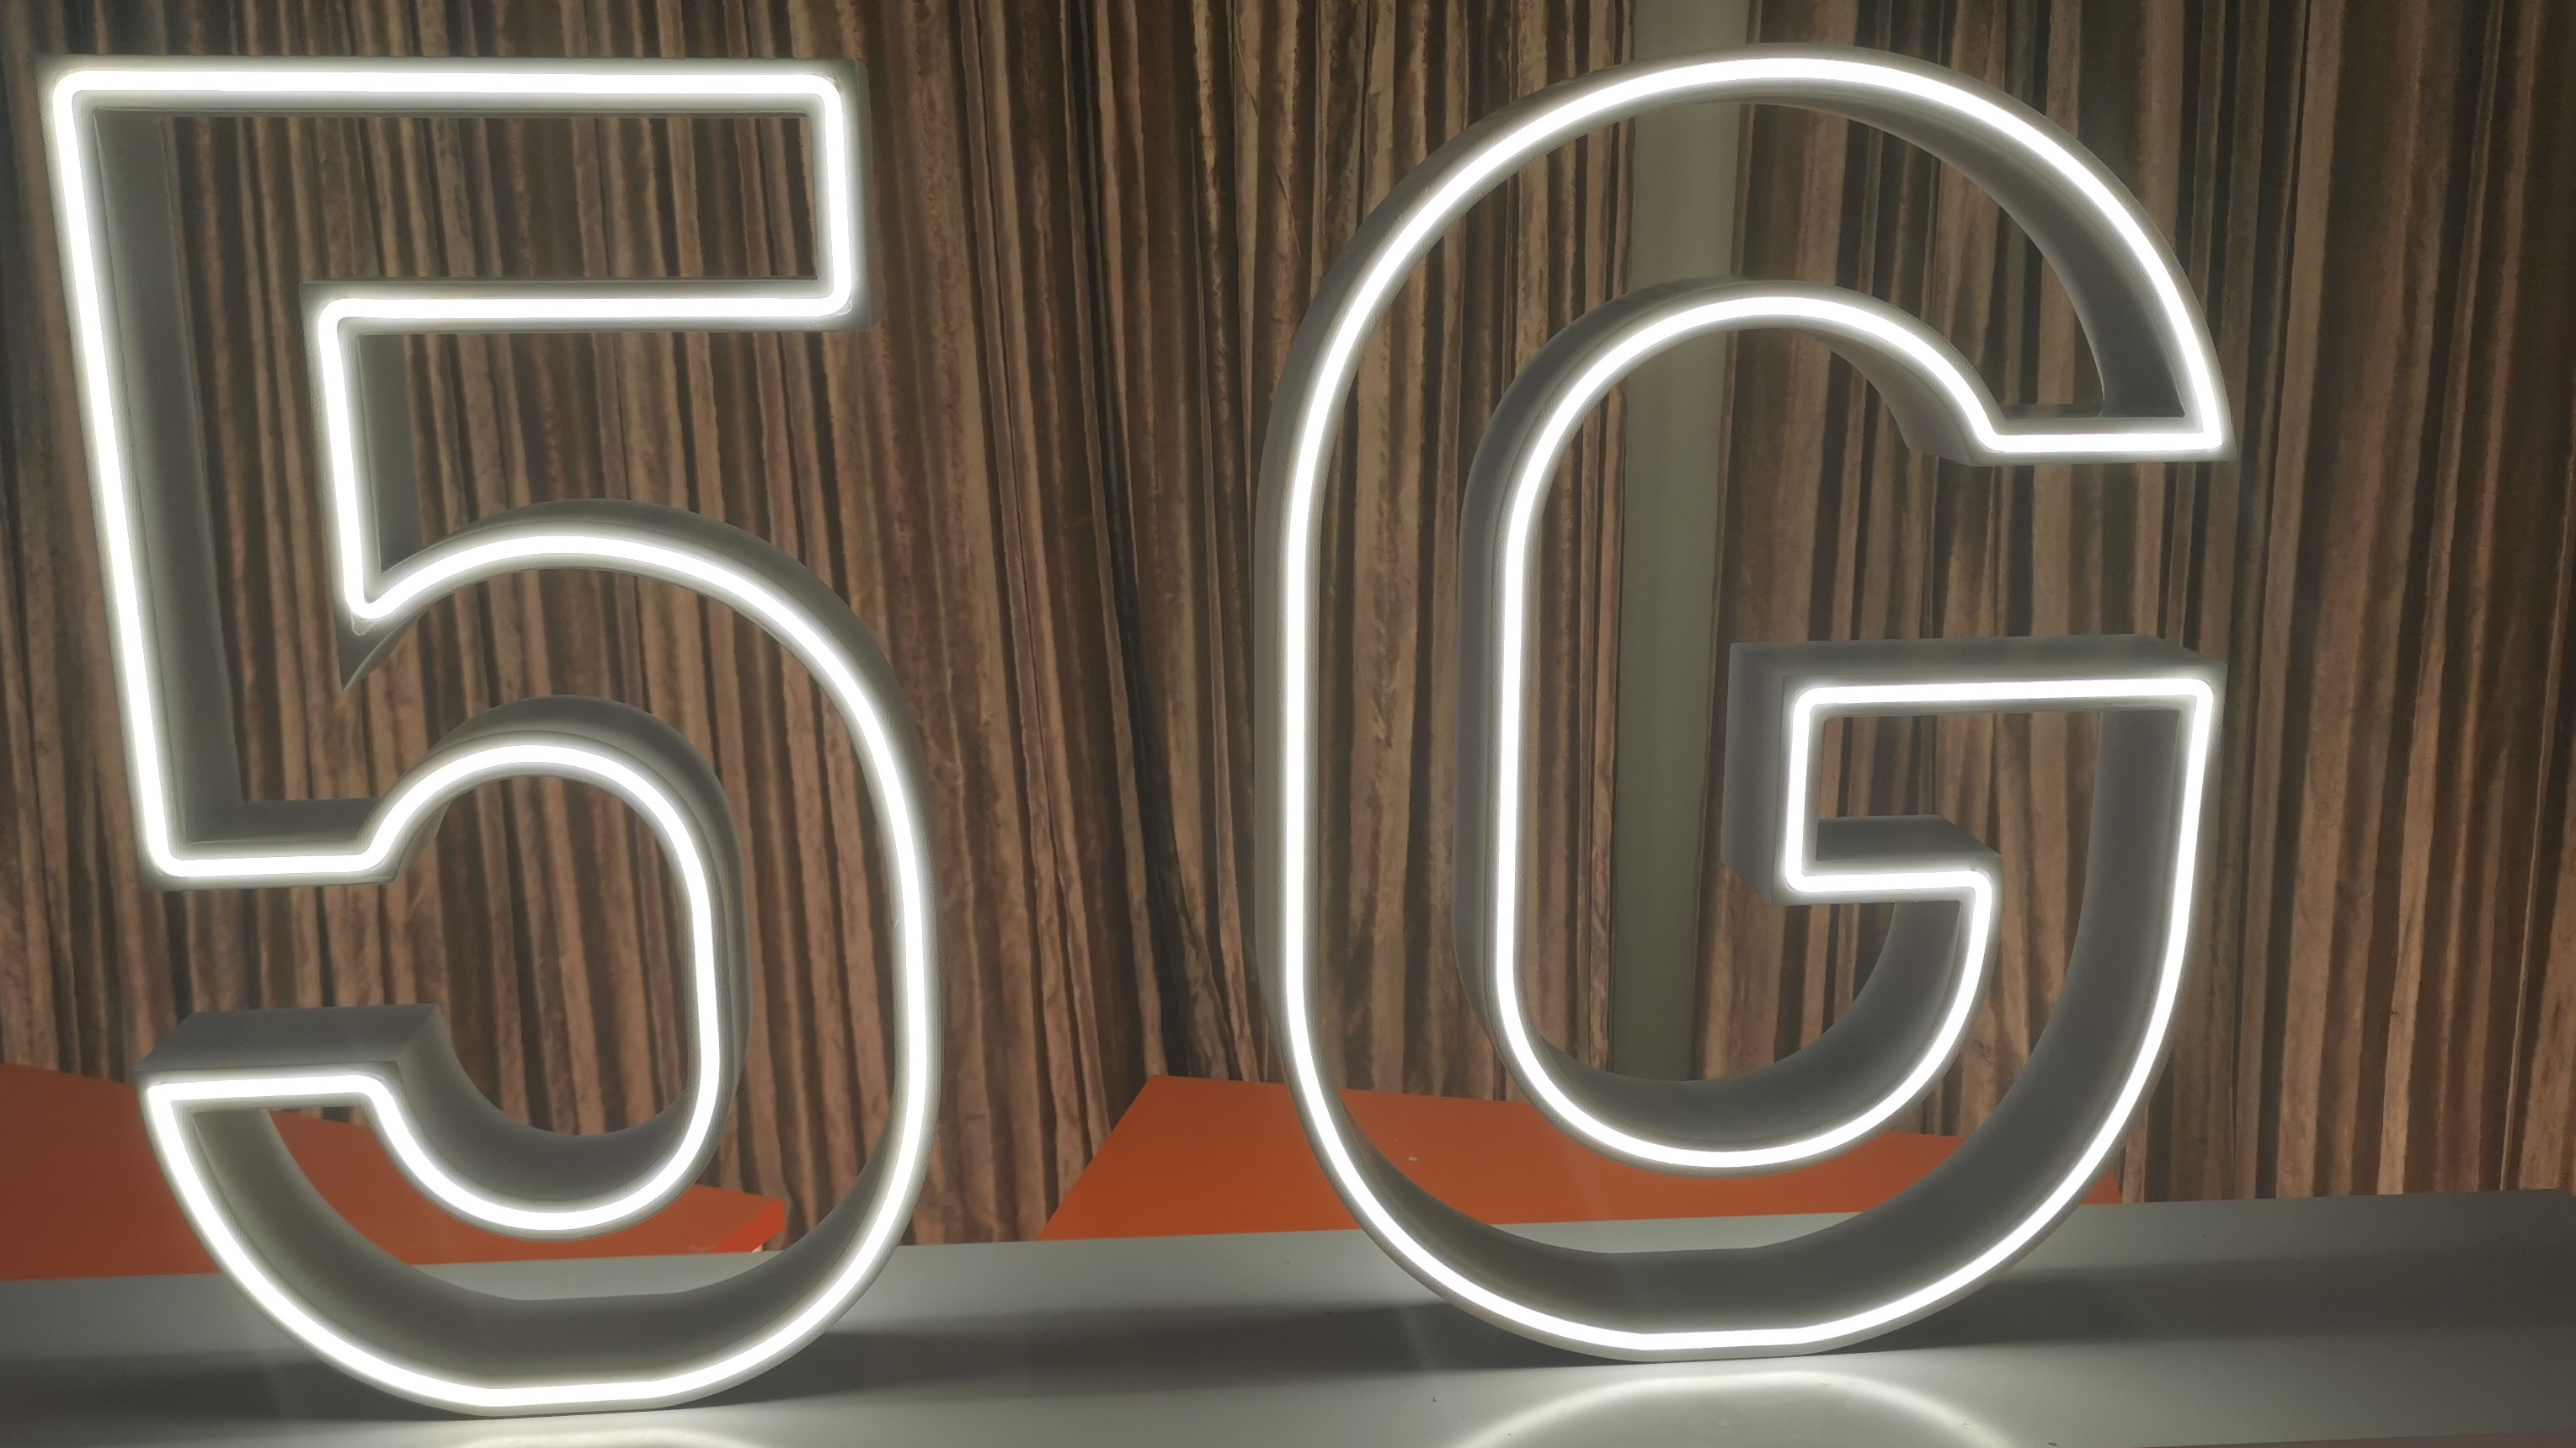 Telecom operators need to lead way in developing tie-ups to foster 5G industrial innovations